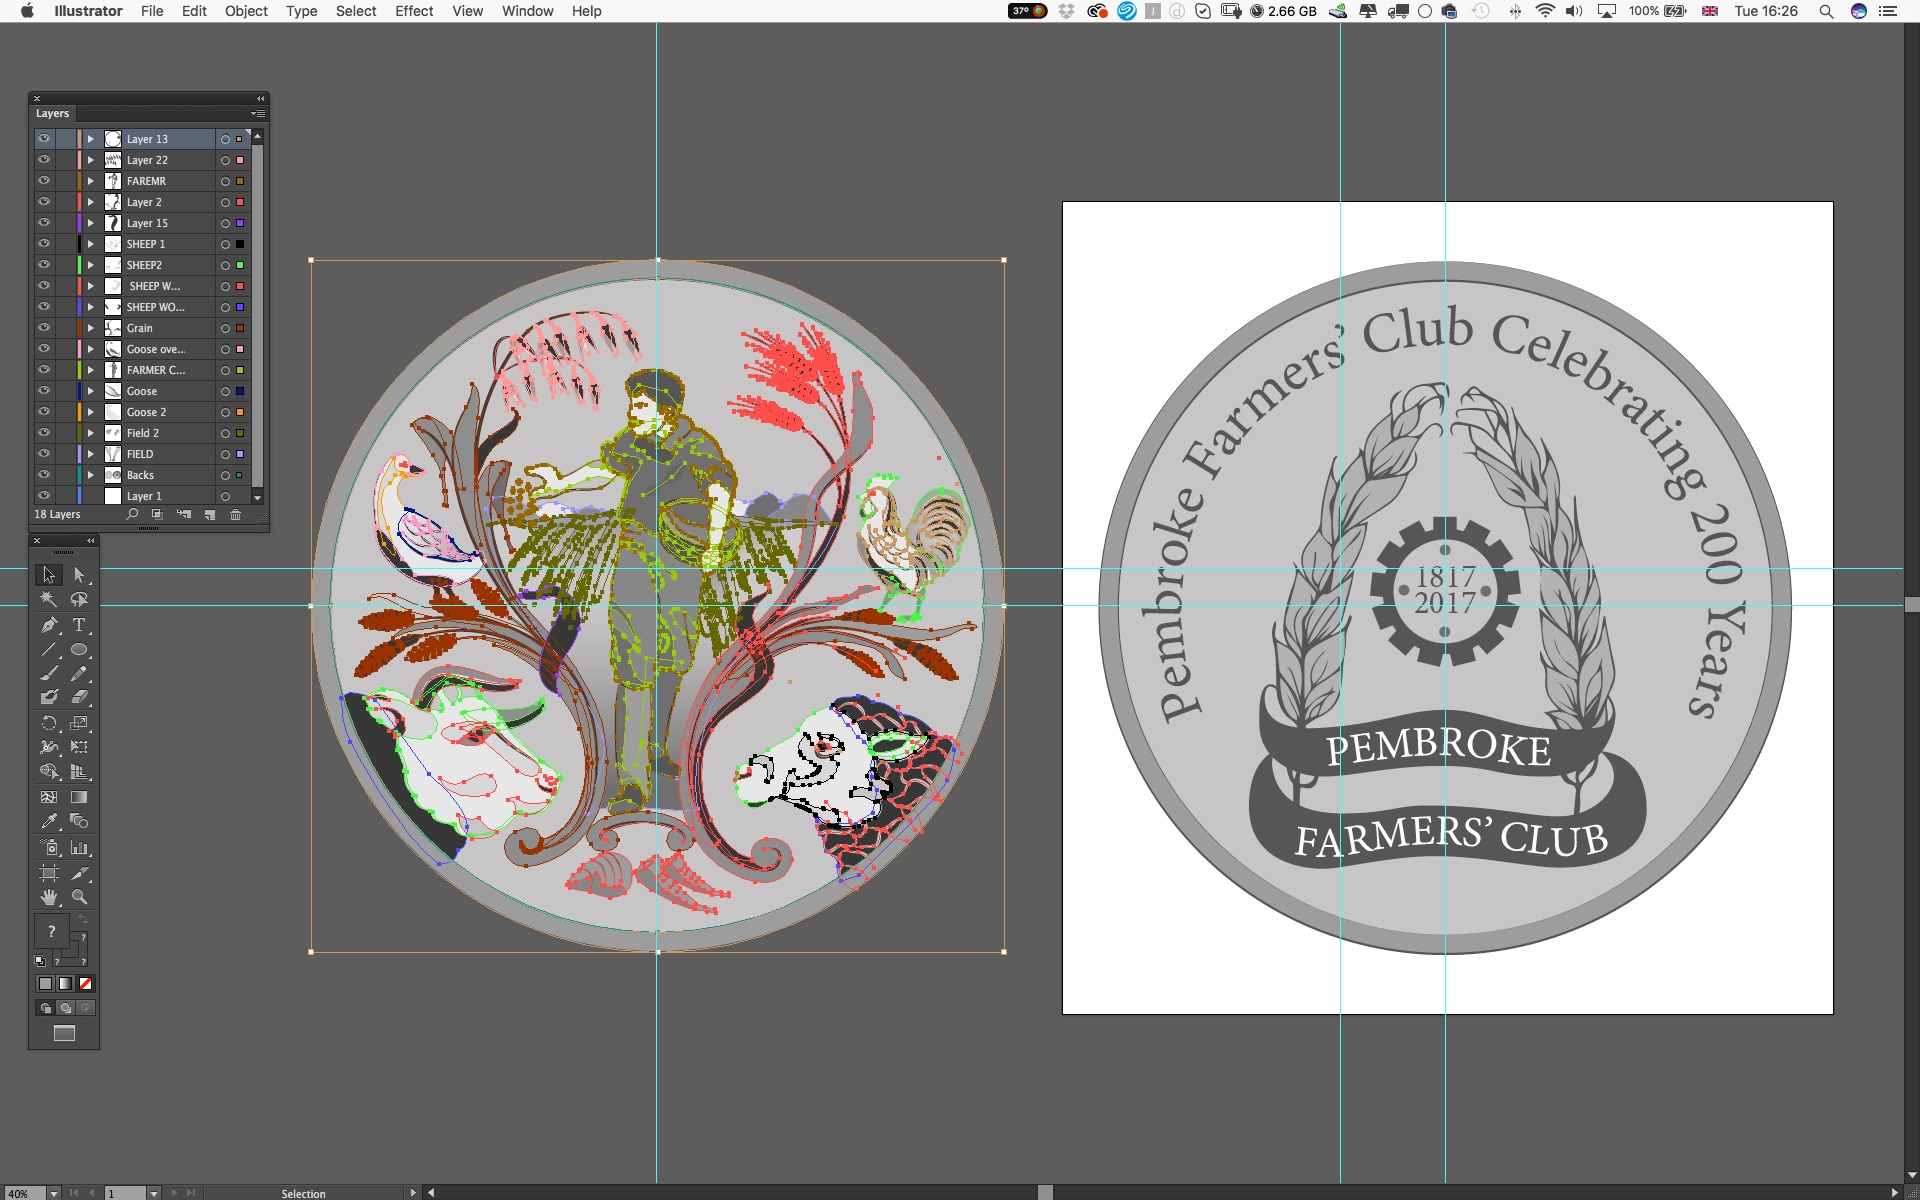 Pembroke Farmers' Club Coin - design illustration